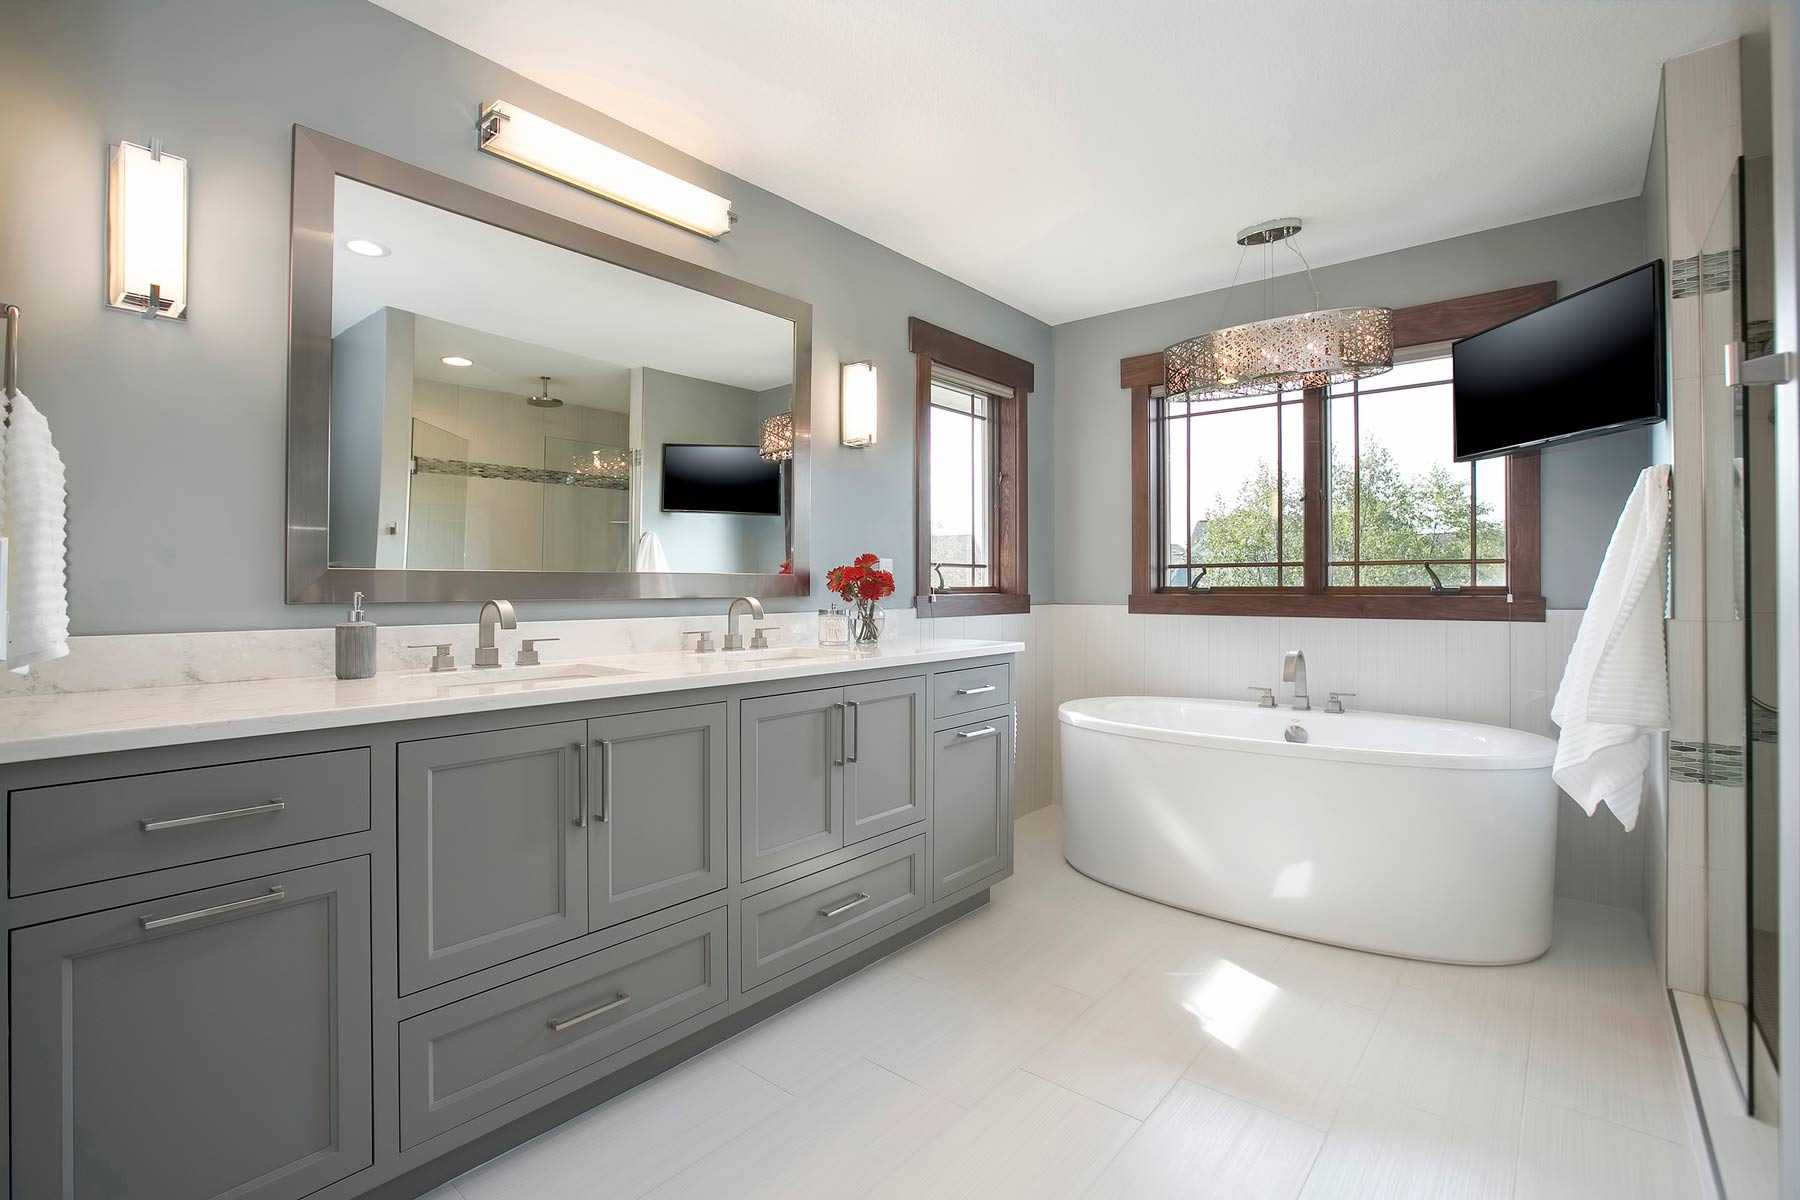 Twin cities home design remodeling james barton design for Bathroom remodeling minneapolis mn